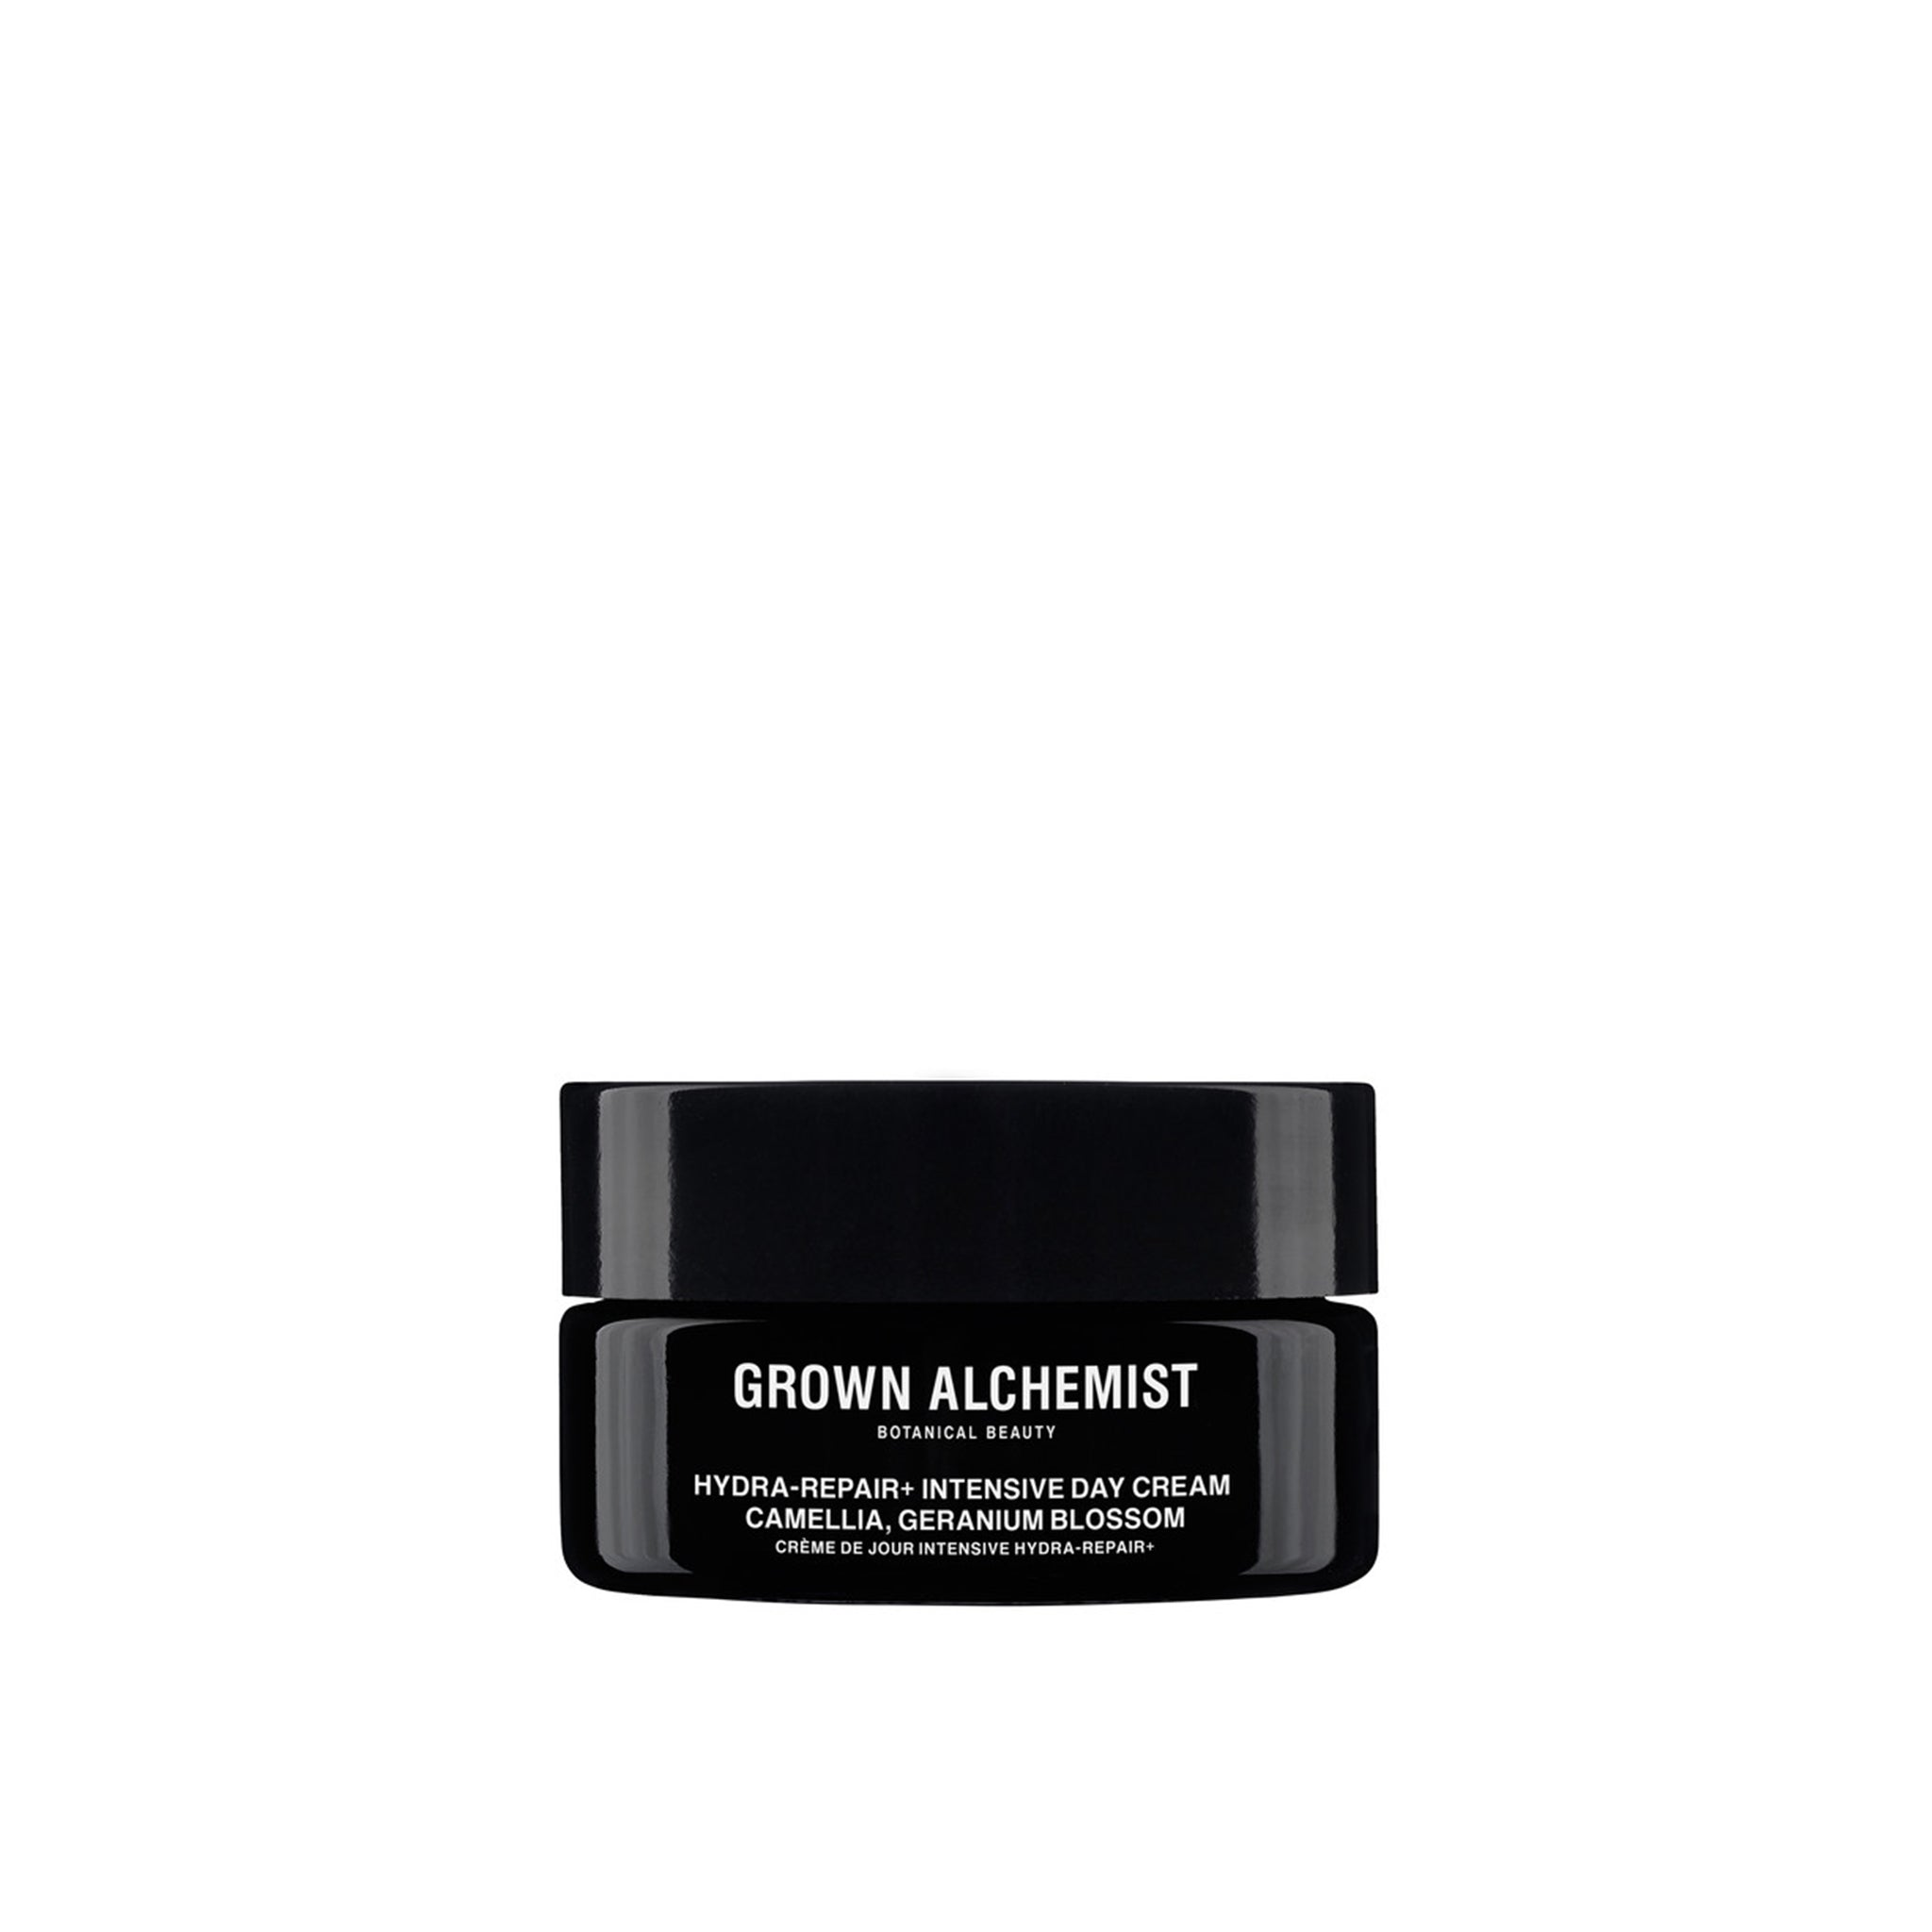 Hydra-Repair+ Intensive Day Cream: Camellia, Geranium Blossom